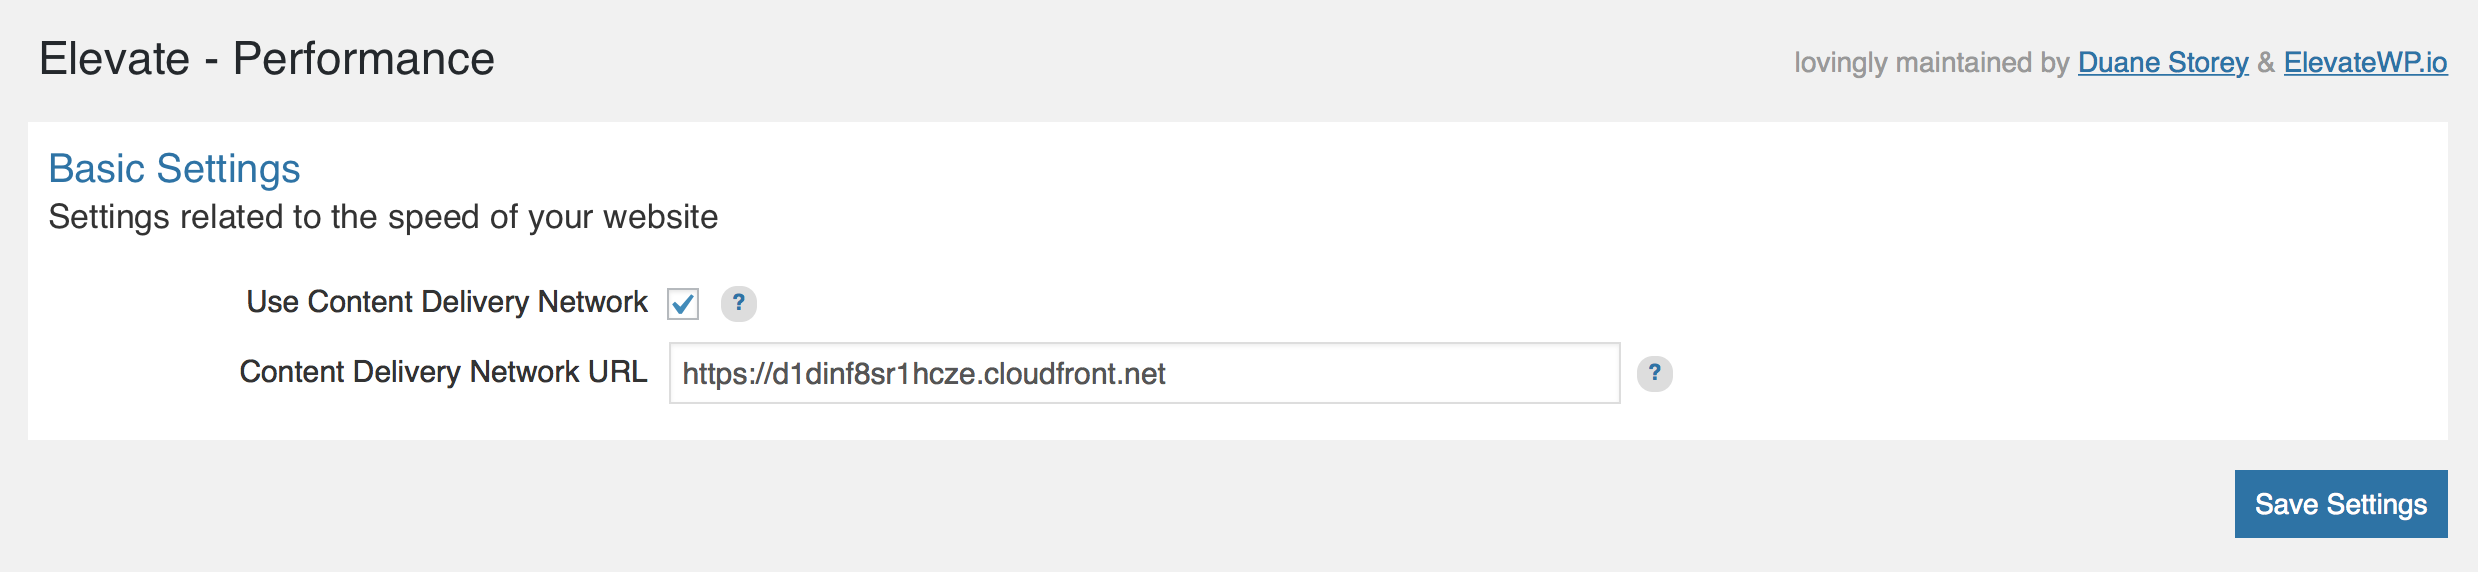 Configuring your CDN URL in Elevate